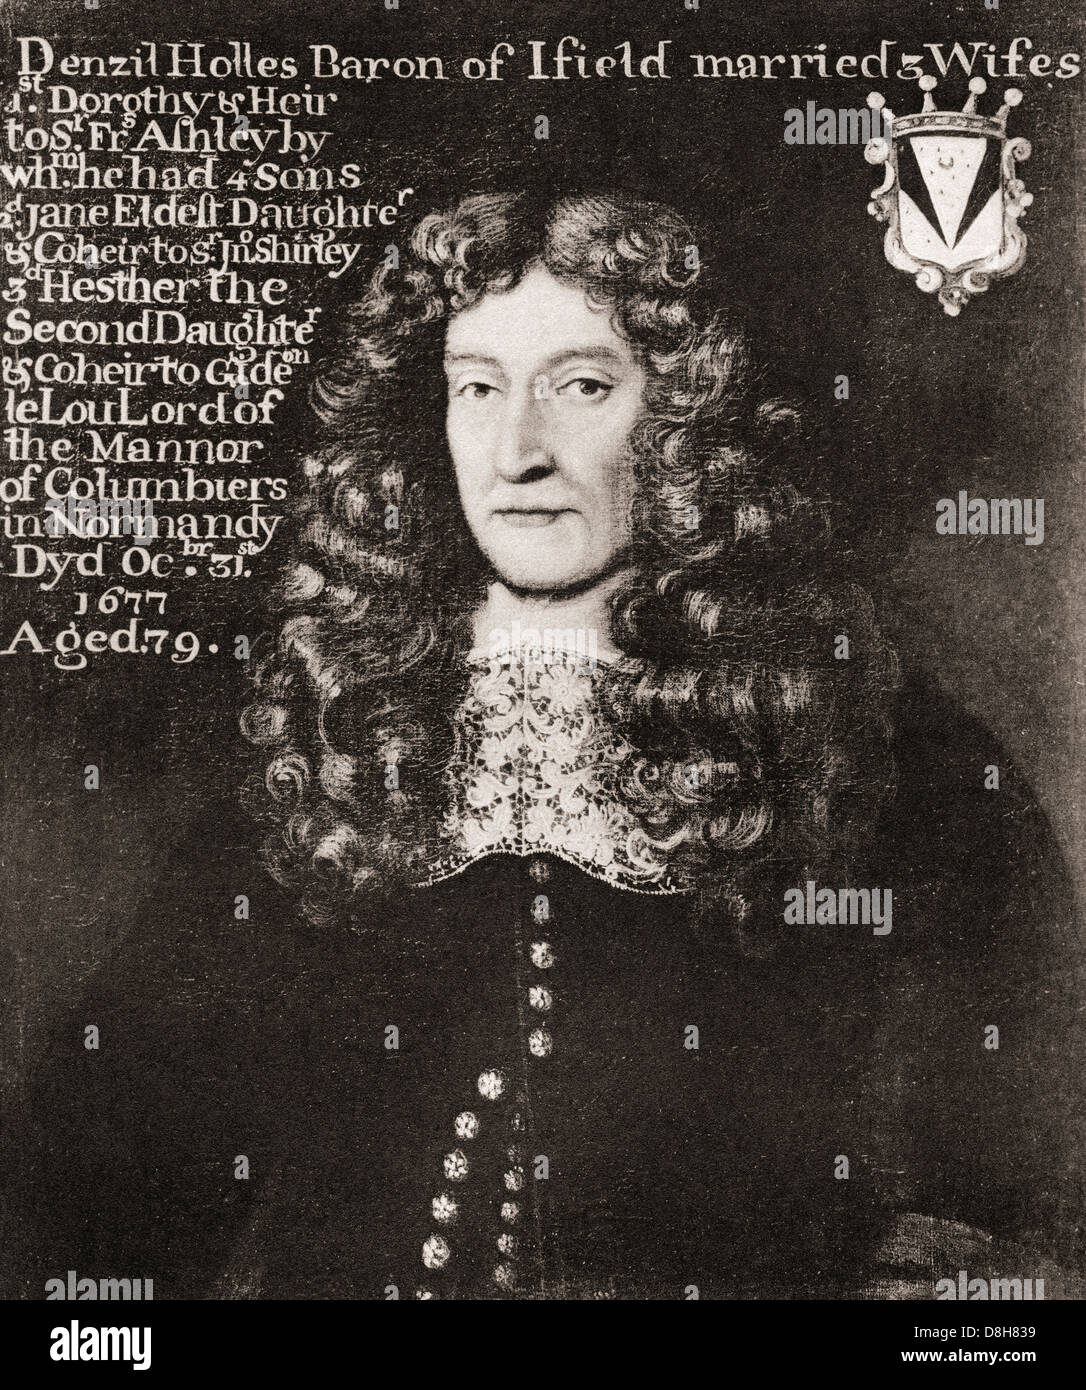 Denzil Holles, 1st Baron Holles, 1599 – 1680. English statesman and writer. - Stock Image